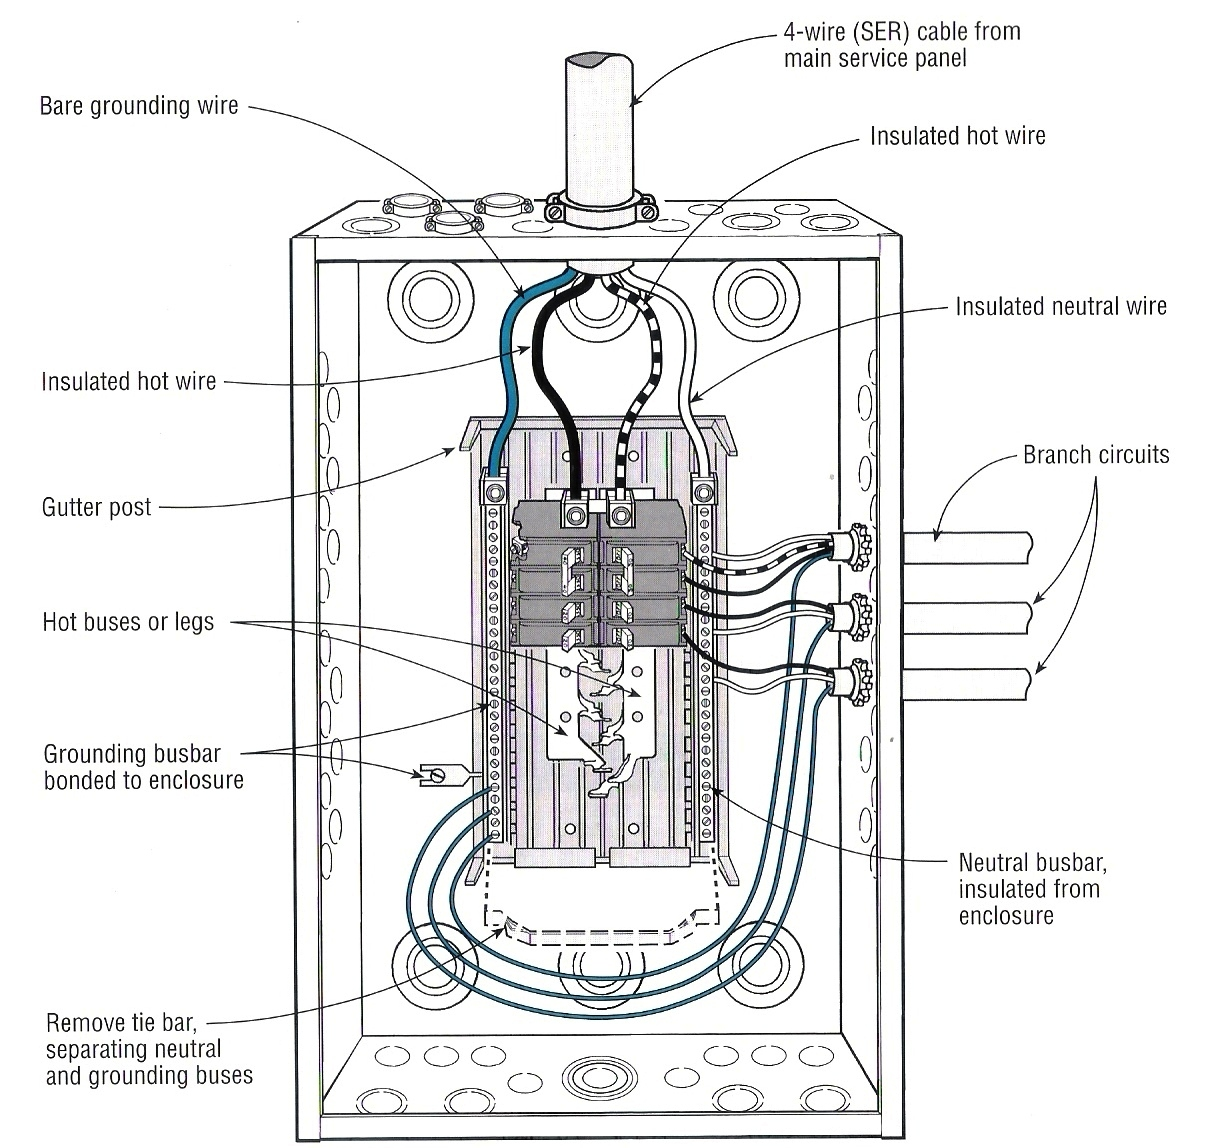 Electric Service Panel Wiring Diagram on 3 phase wiring chart